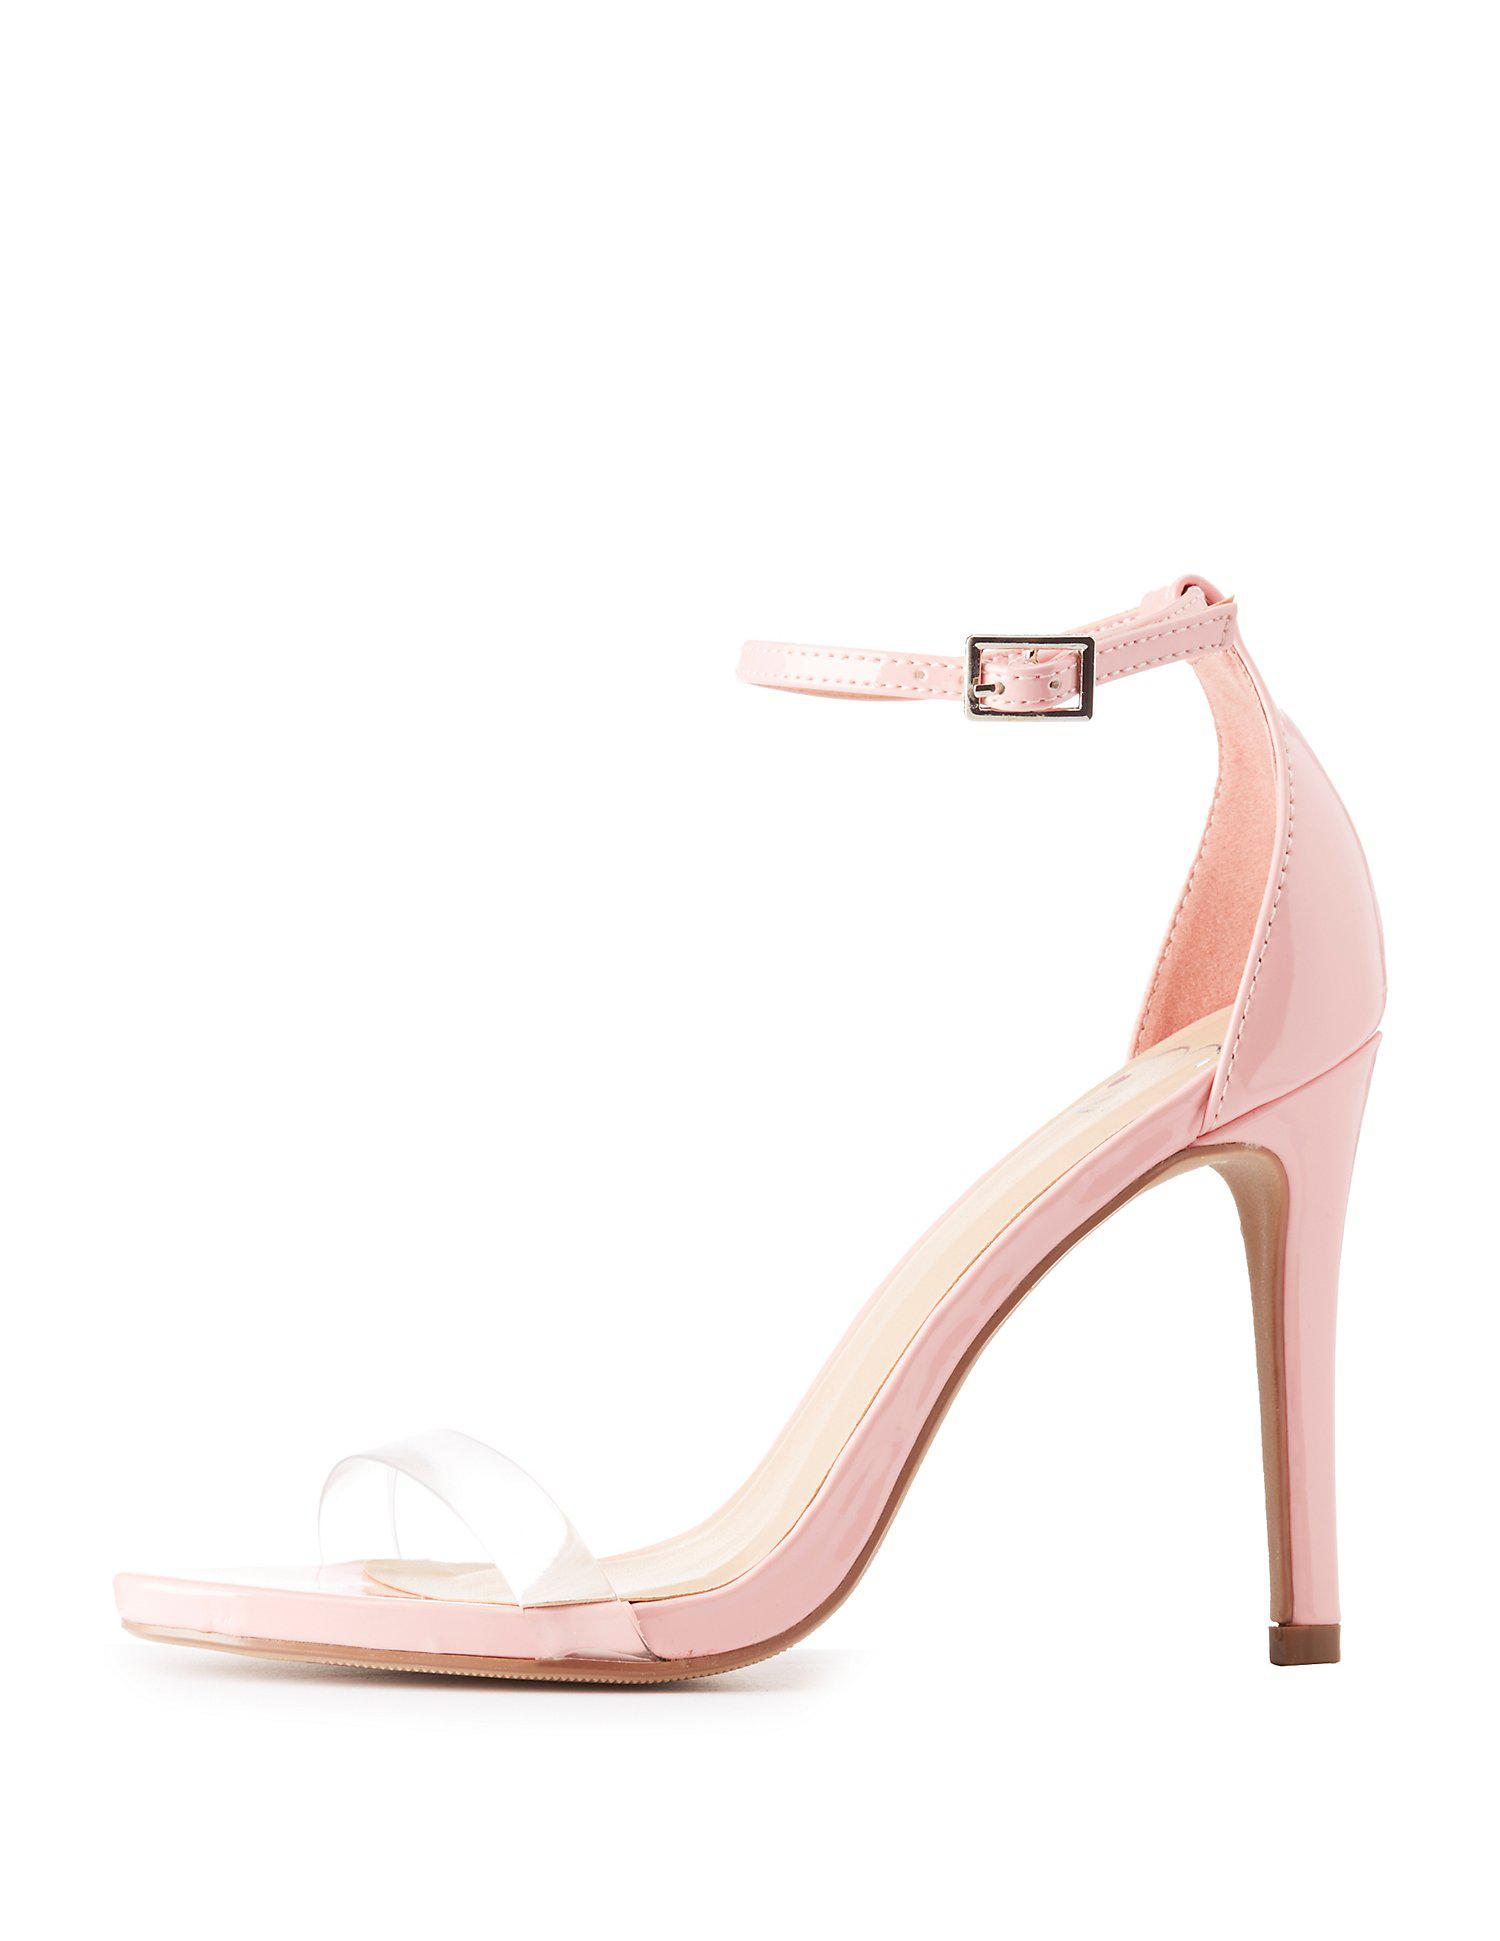 2550cd8018a Lyst - Charlotte Russe Clear Strap Two-piece Sandals in Pink